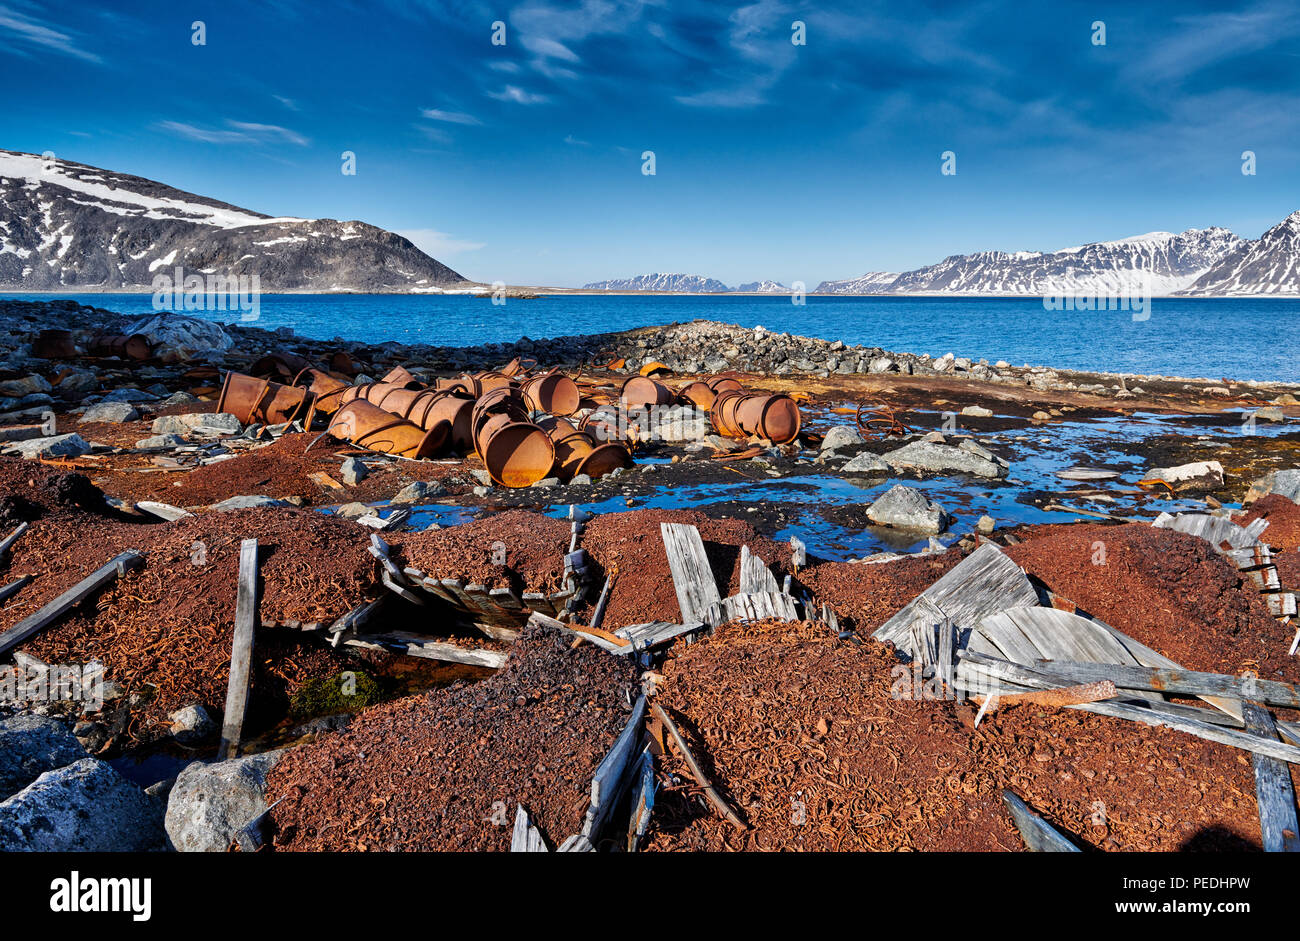 rusty remains on historical site of Virgohamna, Svalbard or Spitsbergen, Europe - Stock Image